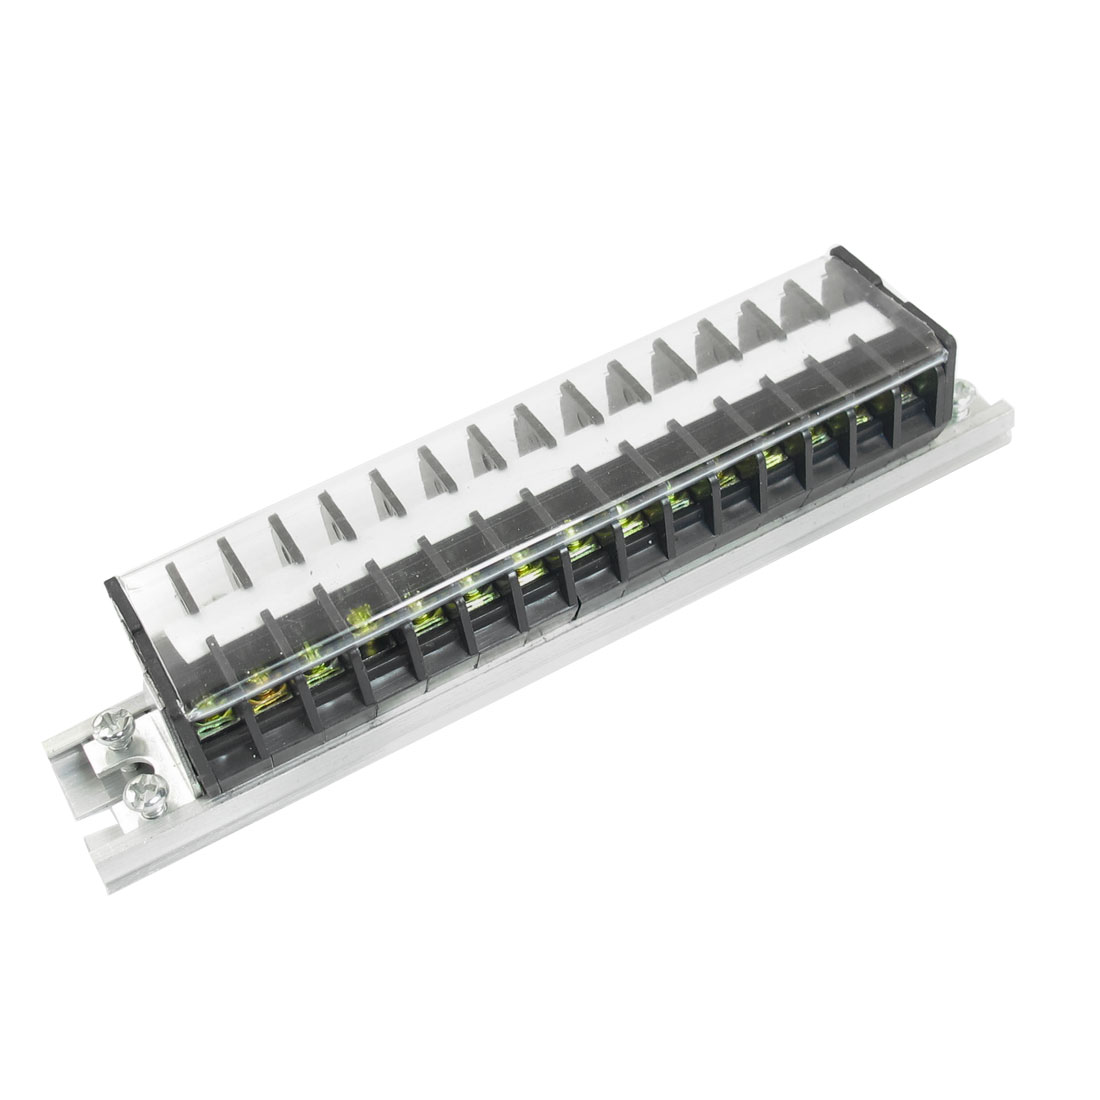 660V 15A 30 Positions Double Rows Covered 30 Screw Barrier Terminal Block Wire Connector